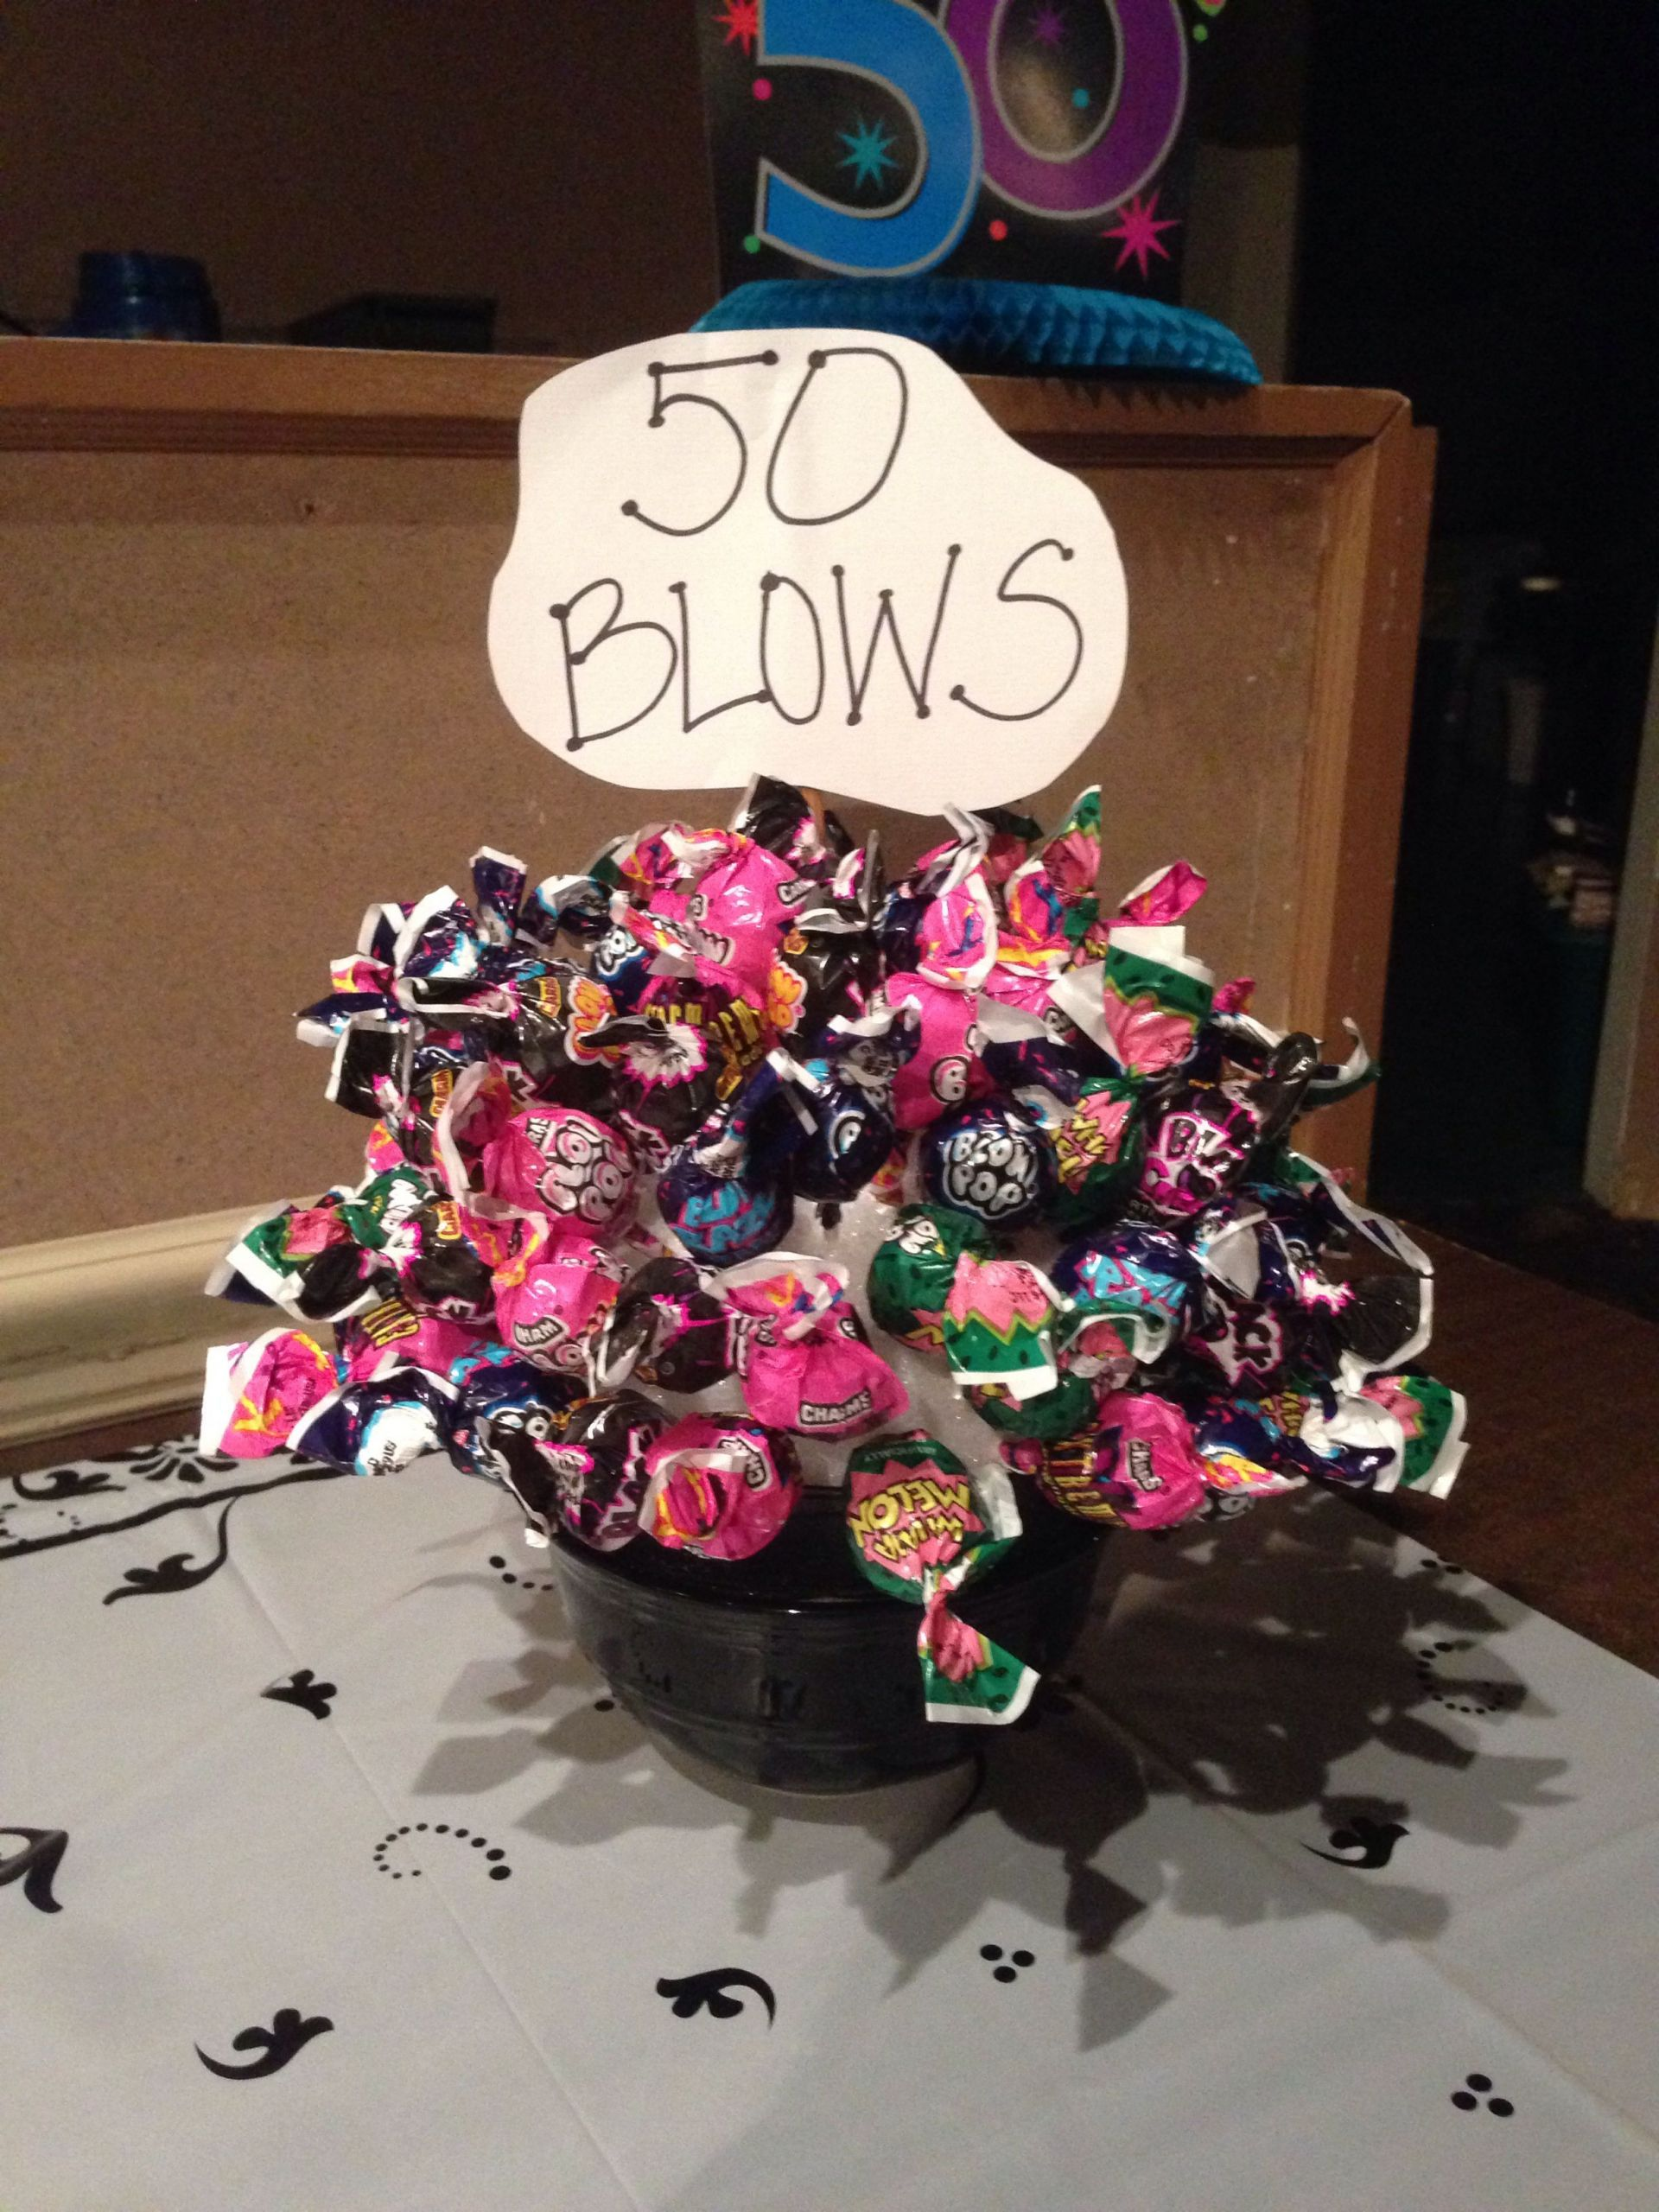 Fifty Birthday Gift Ideas  50 Blows bouquet for a 50th birthday party t